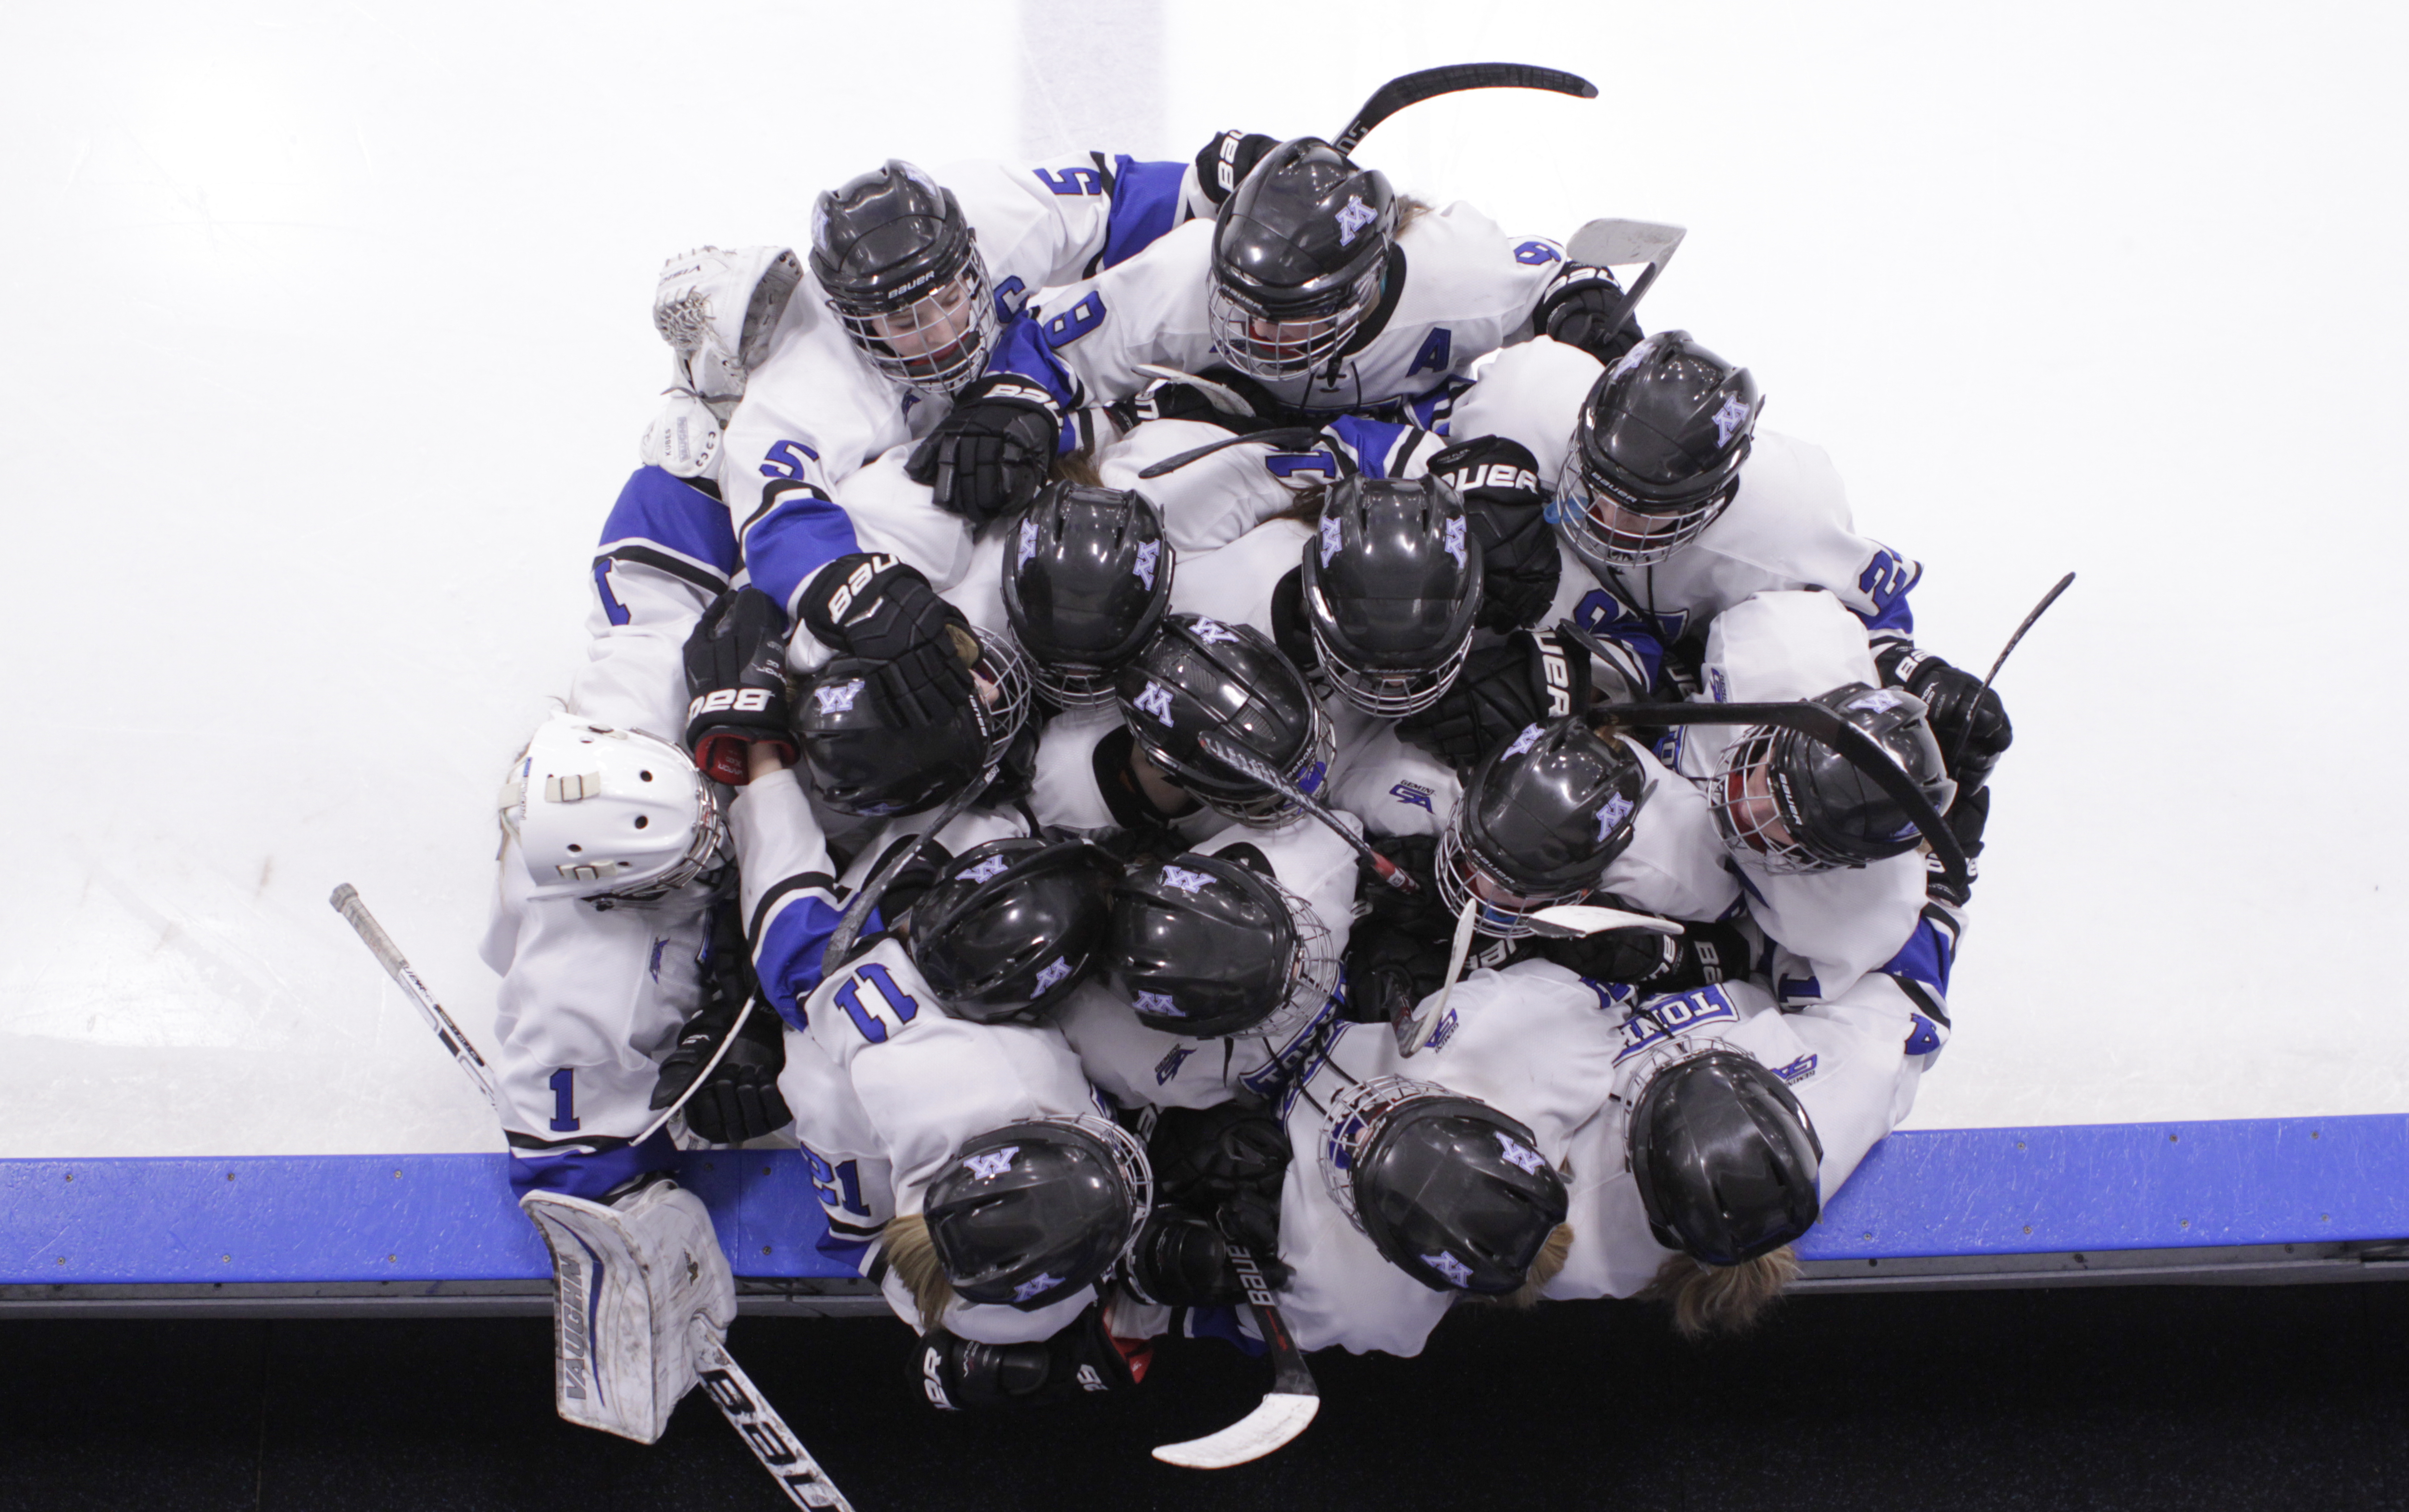 The Minnetonka Skippers huddle on the ice at the beginning of the second period at home at the Pagel Activity Center in Minnetonka. Photo by Chris Juhn